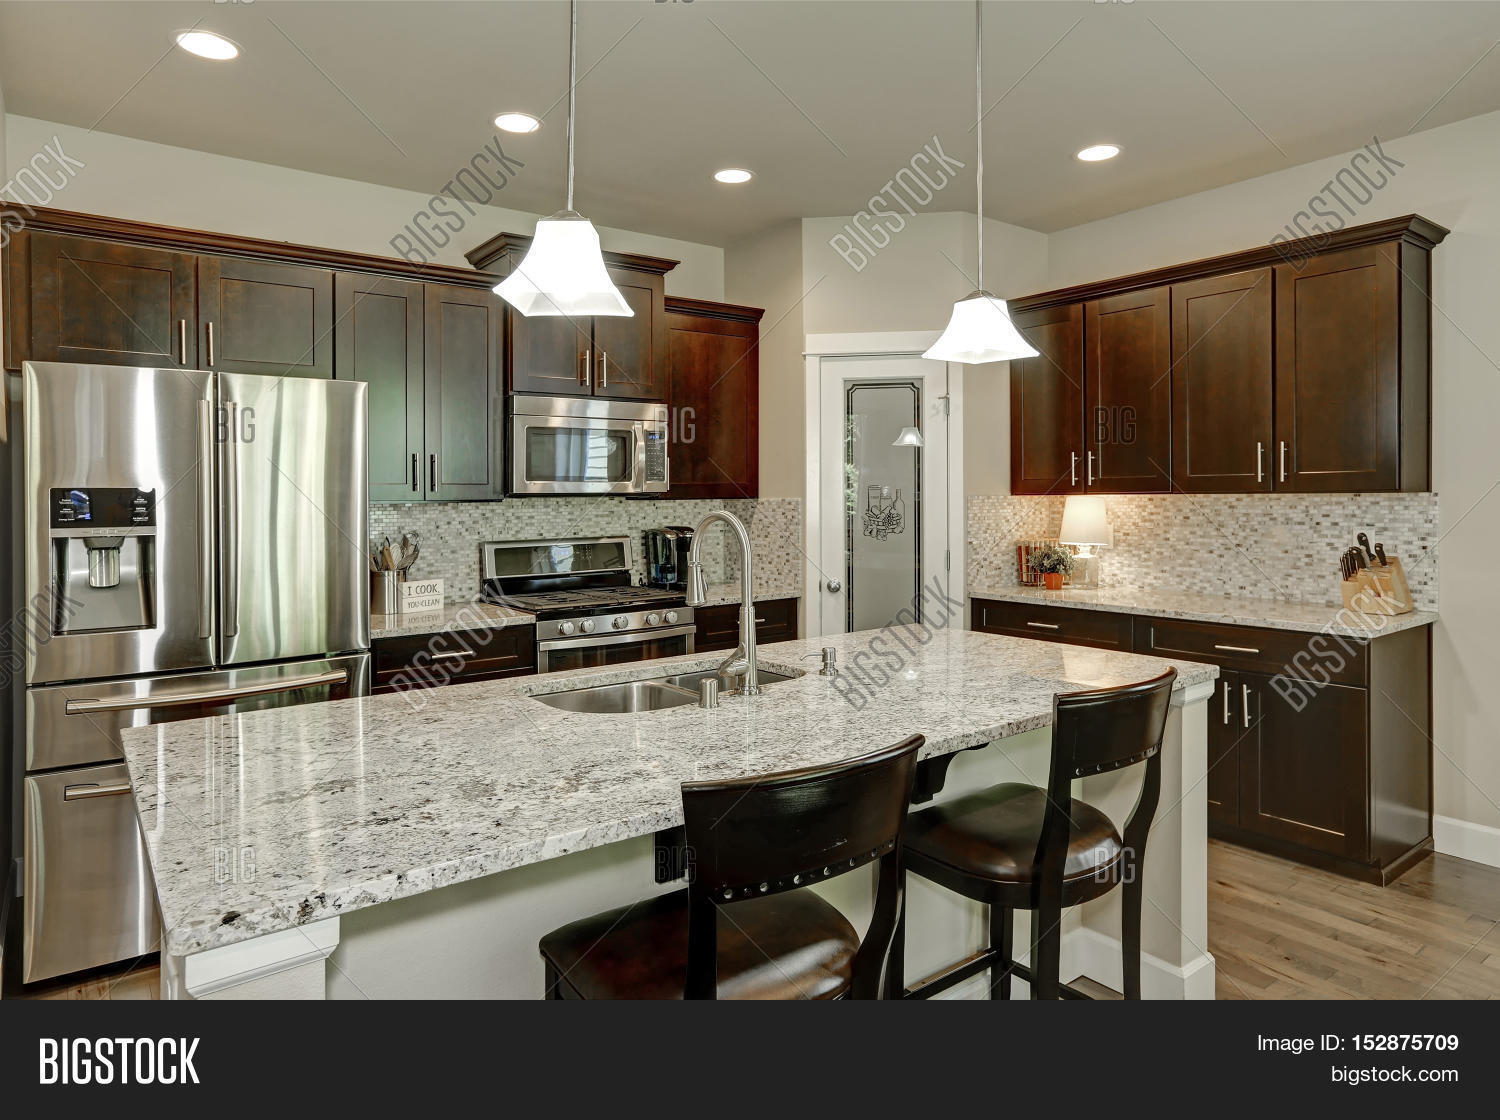 Kitchen,interior,room,apartment,home,house,flat,architecture,bright,new,clean,shiny,elegant,estate,design,cabinets,hardwood,wood,furnished,furniture,stove,white,wall,ceiling,appliances,modern,pendant,granite,northwest,sink,stainless,steel,top,stool,large,windows,renovated,counter,lights,pantry,back,splash,trim